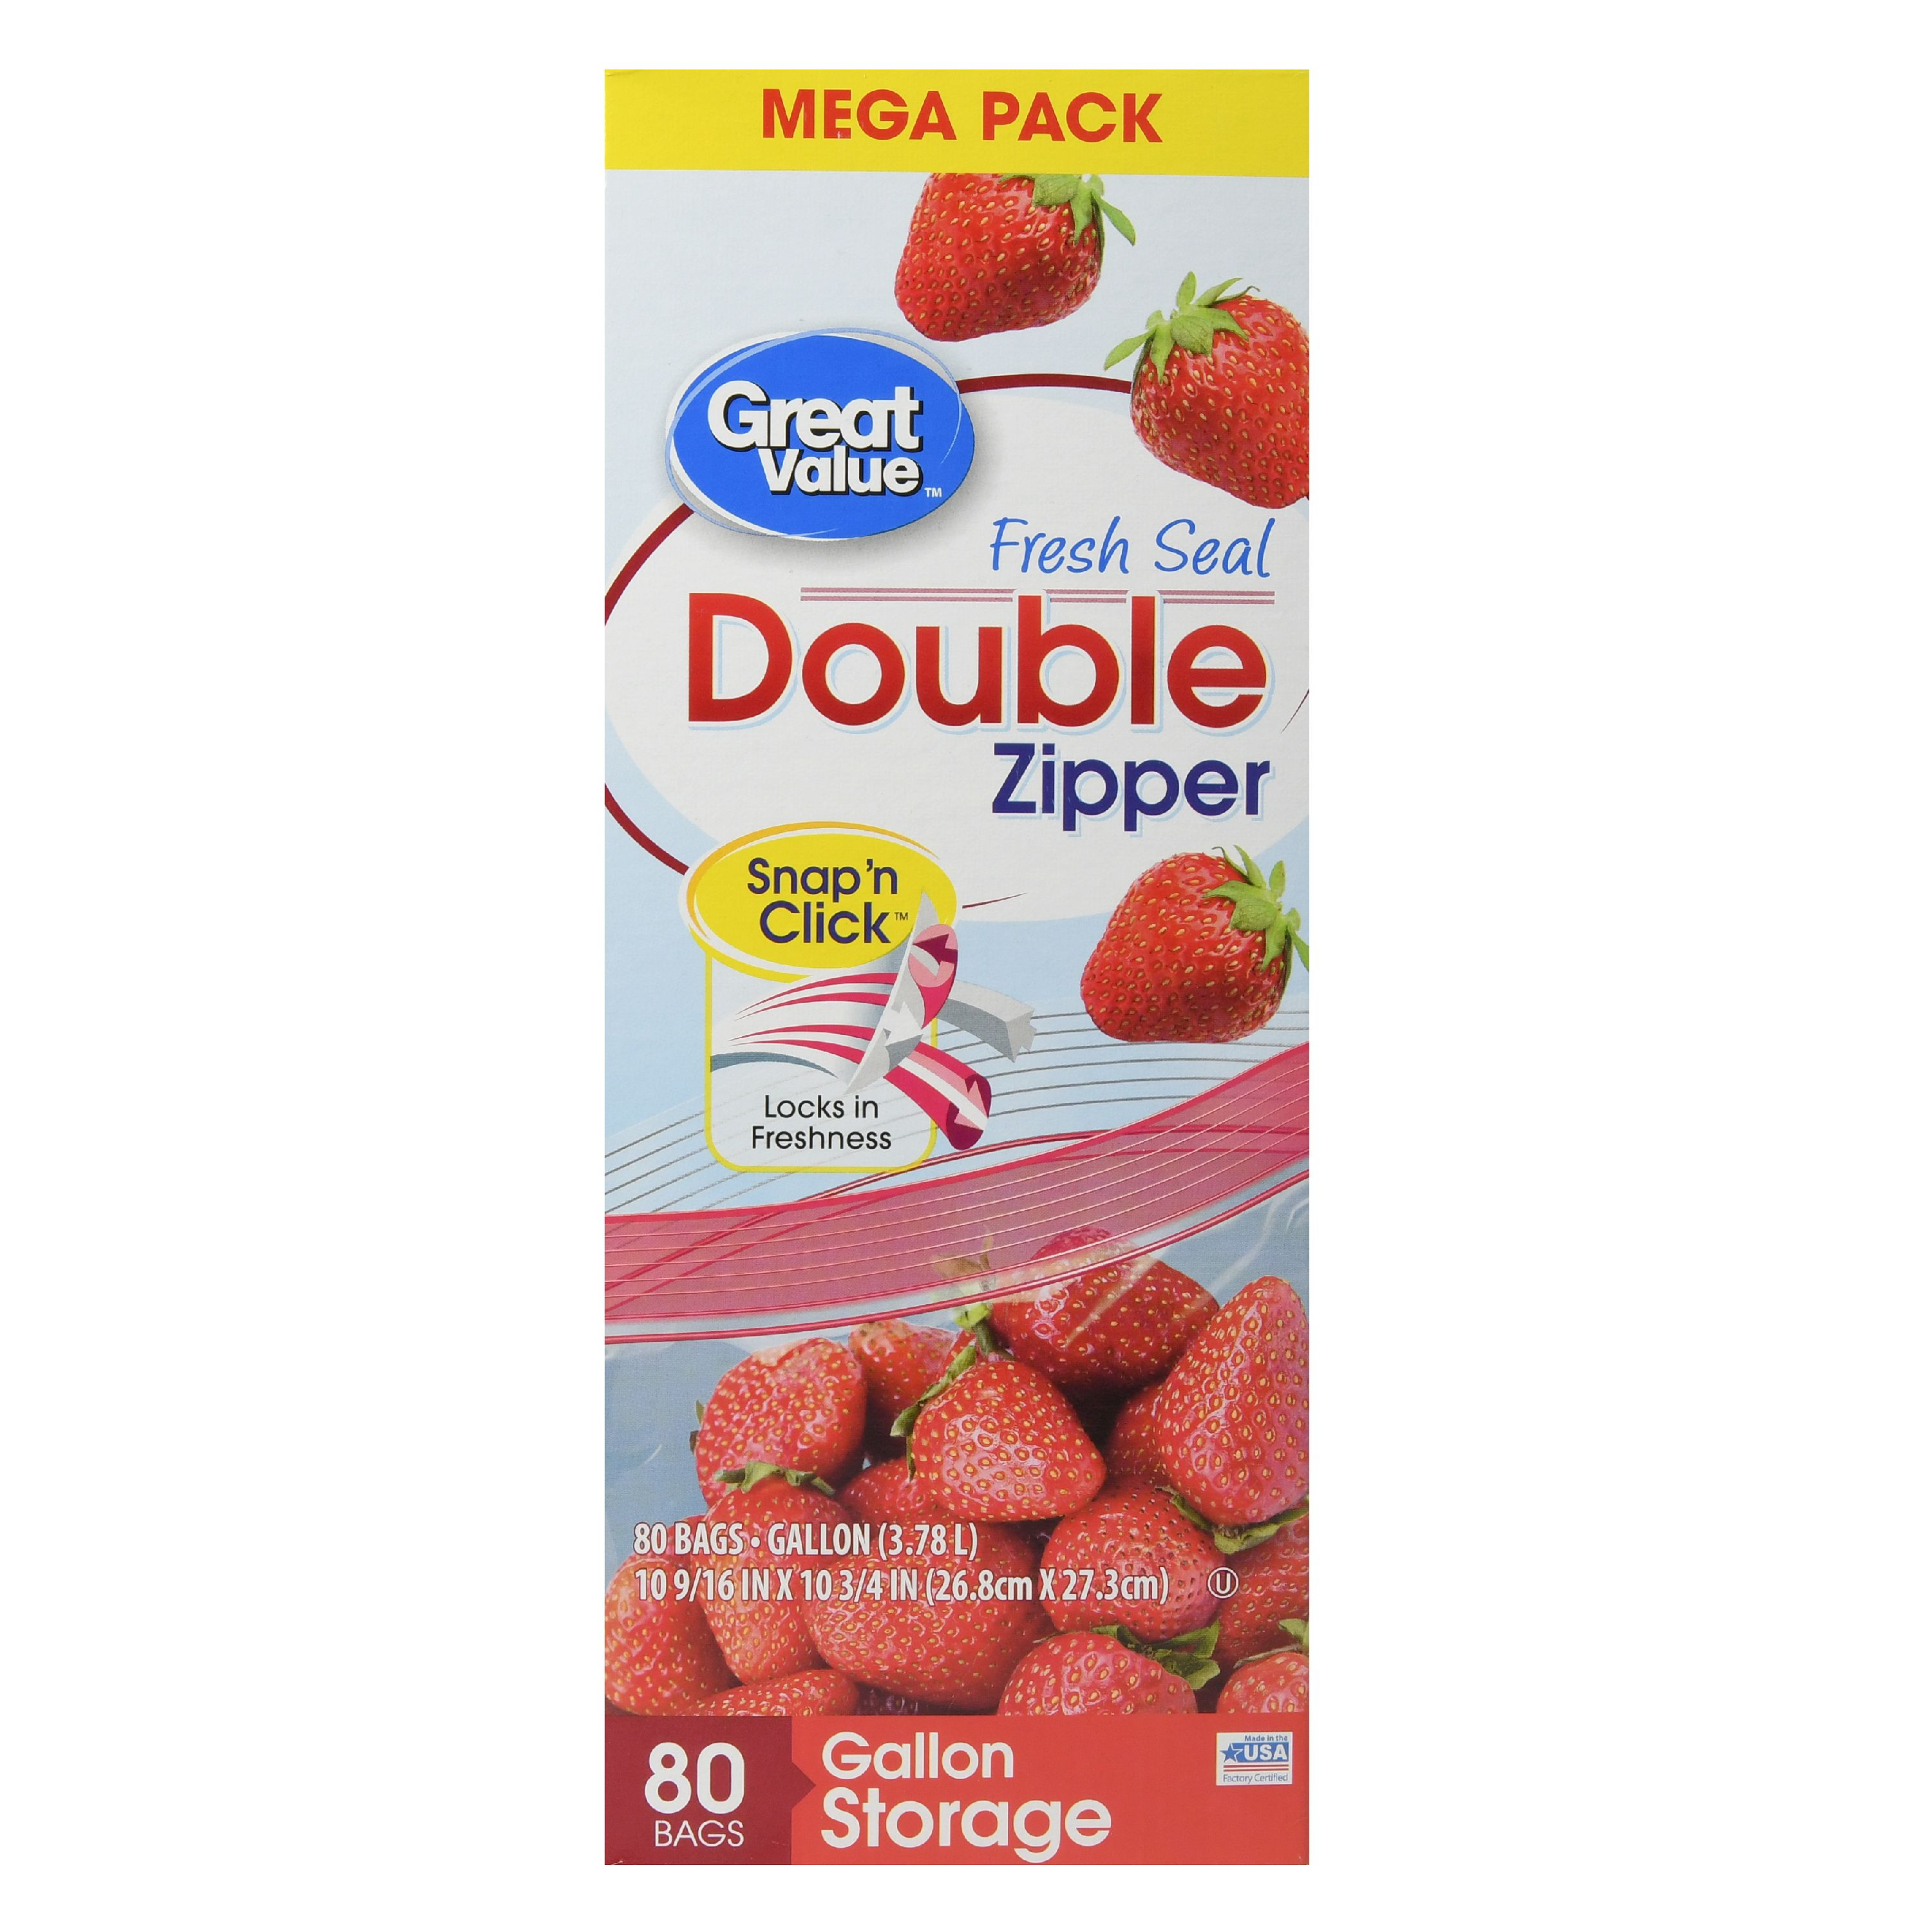 Great Value Double Zipper Bags, Mega Pack, Gallon, 80 Count